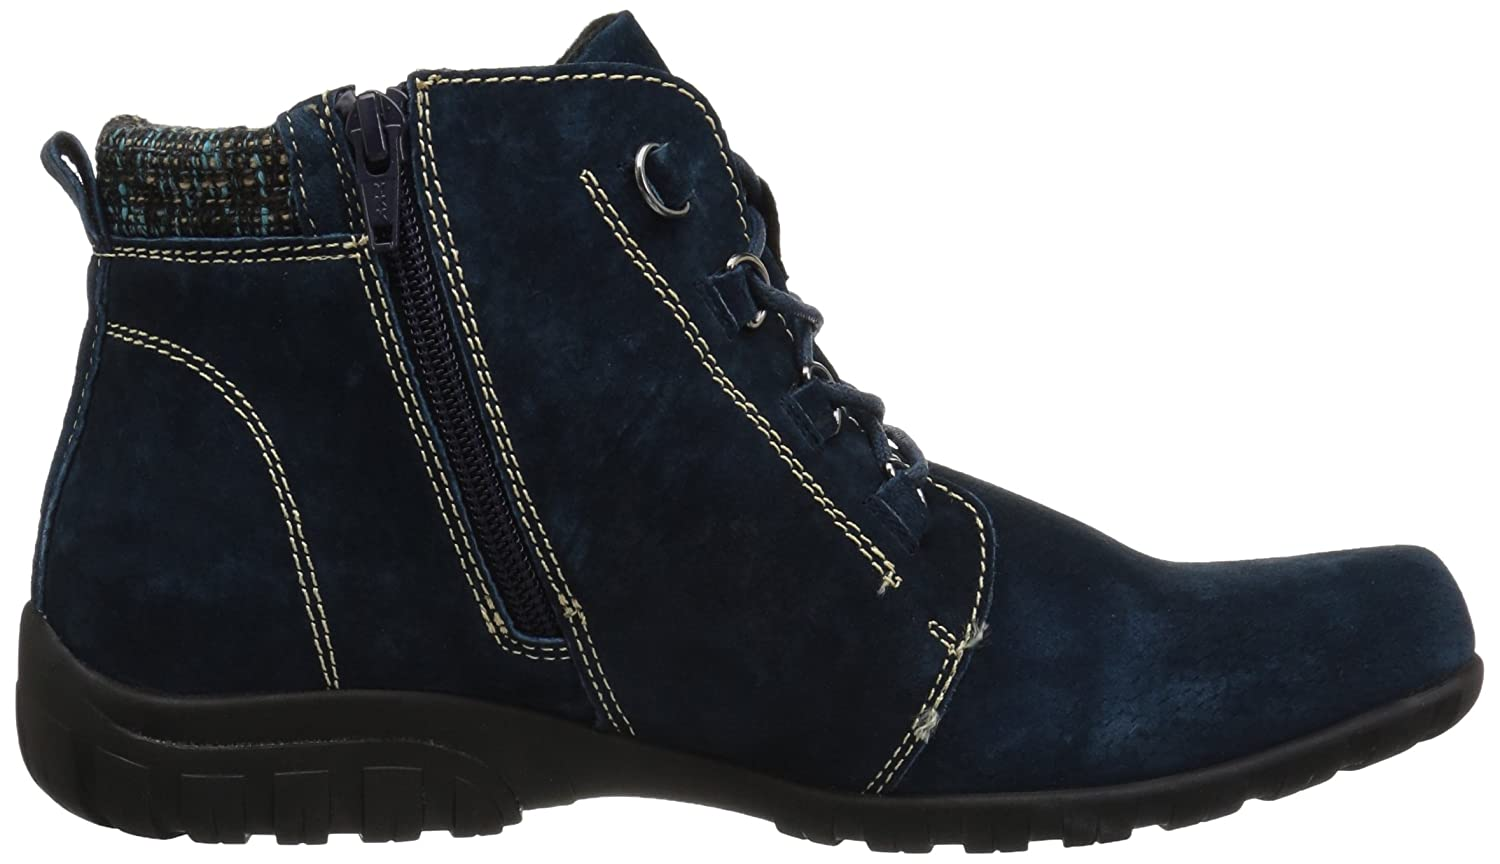 Propet Women's Delaney Ankle Bootie B01N9C3VYQ 6 B(M) US|Navy